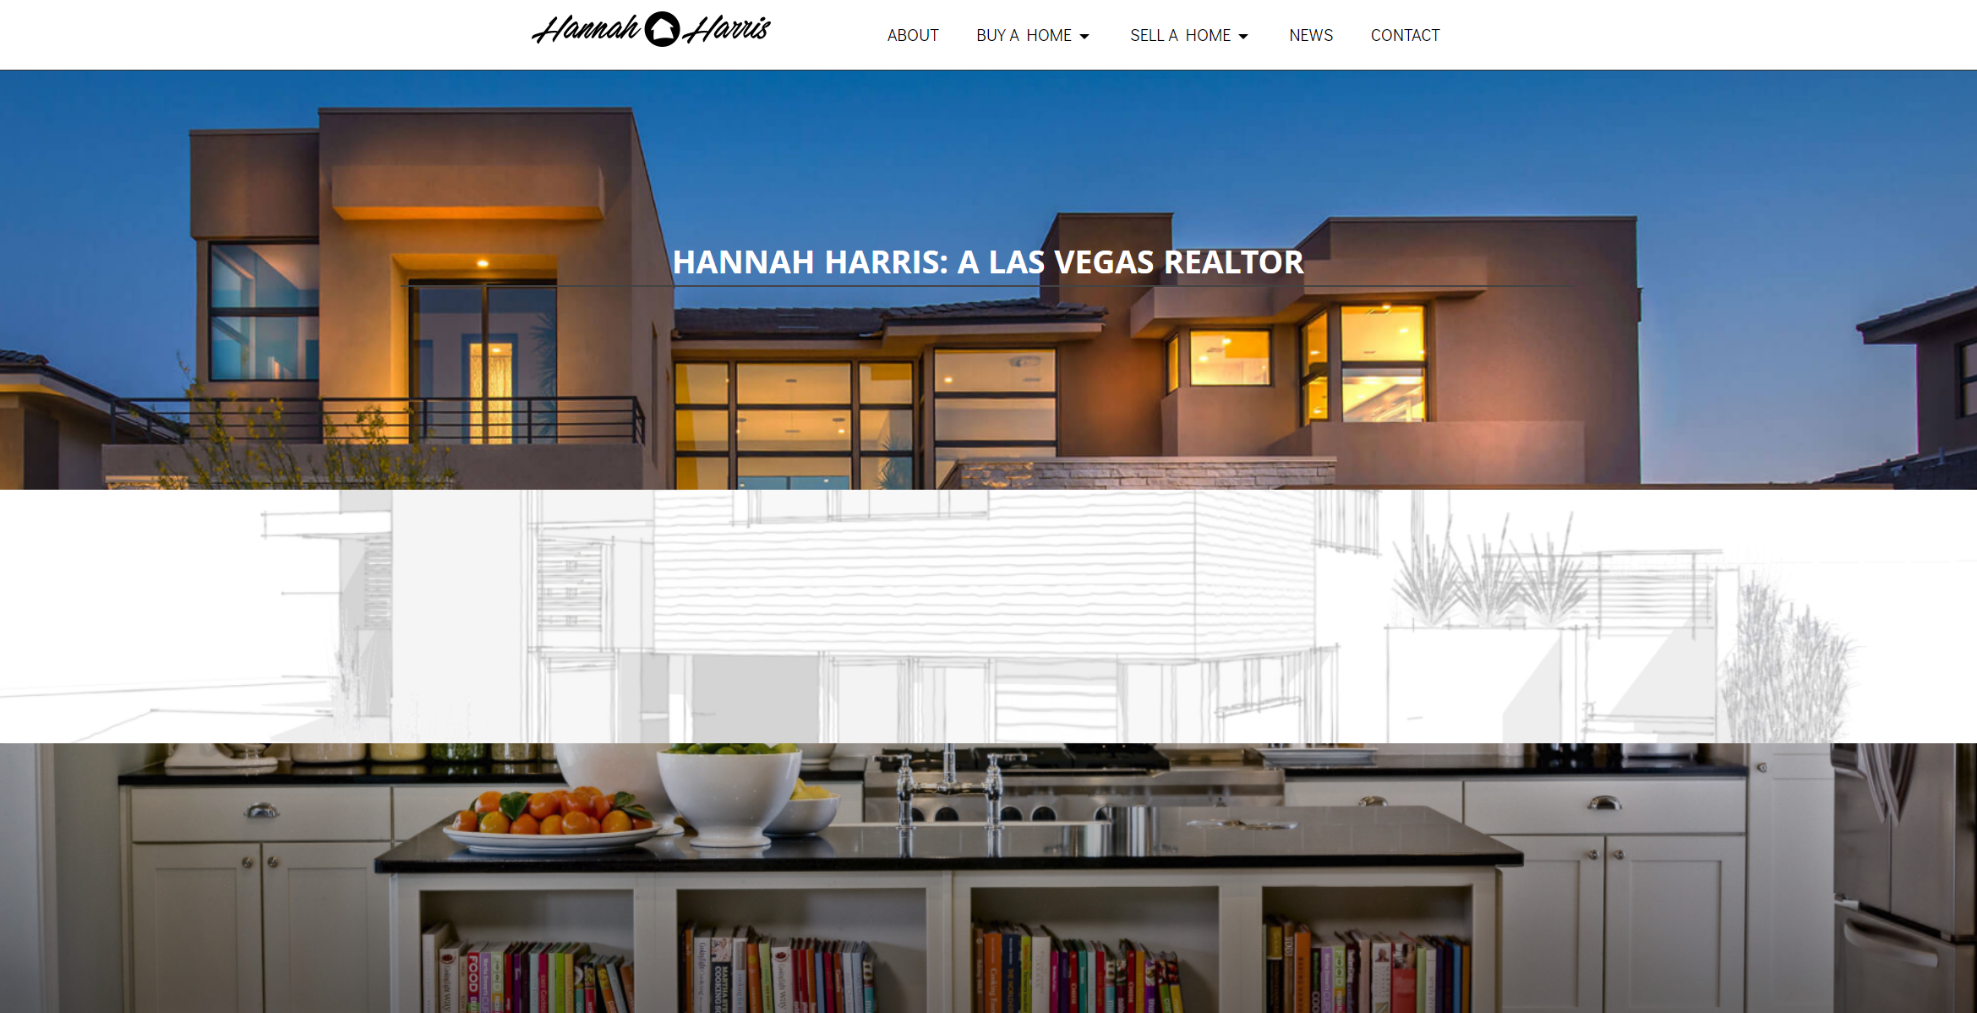 las vegas website development by 702 Pros LLC for Hannah Harris | Justin Young